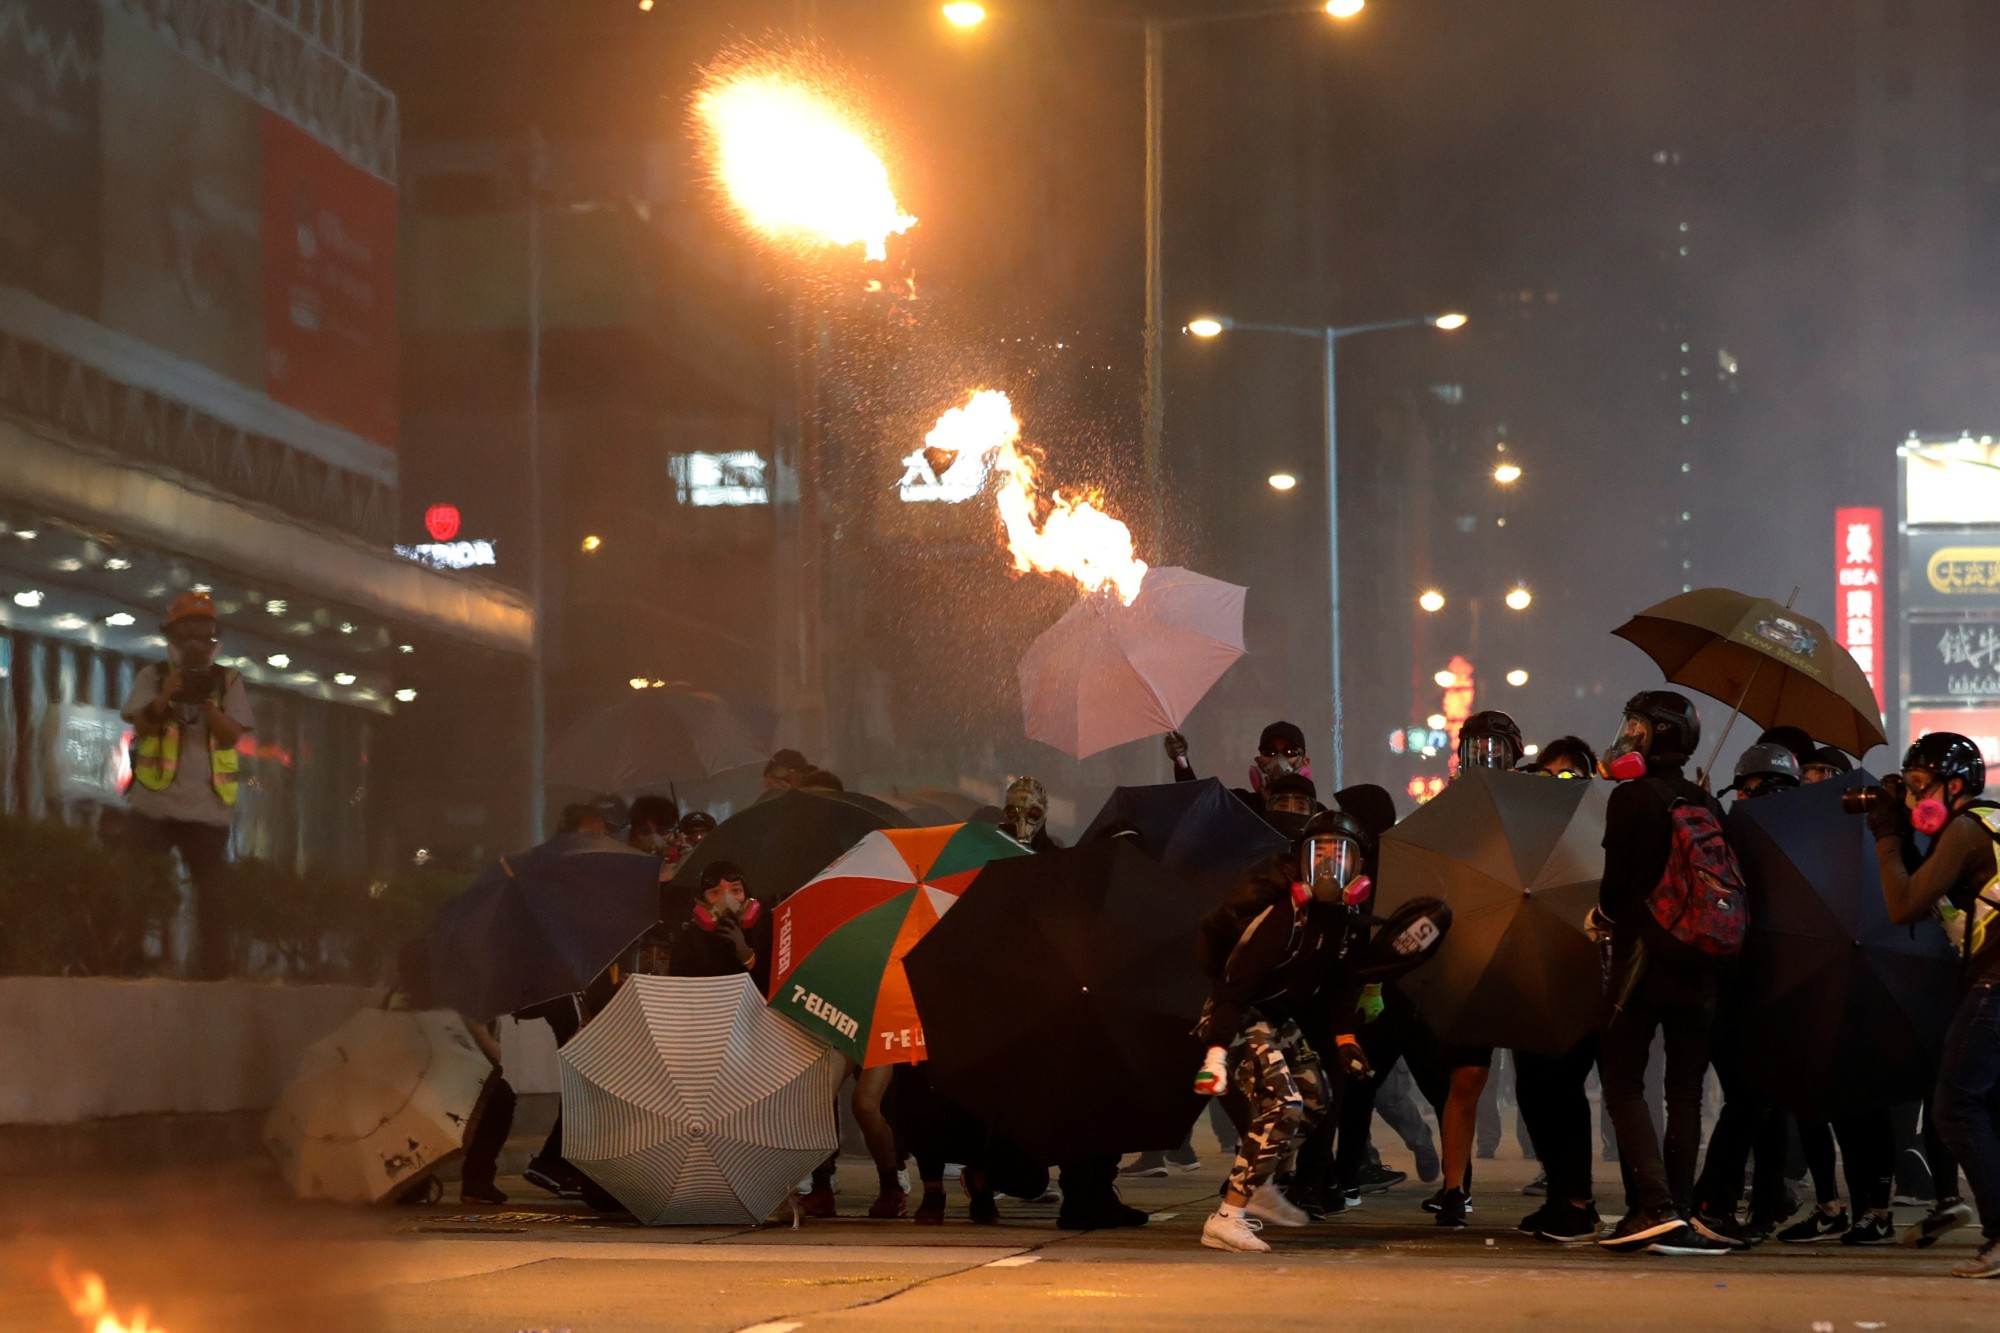 An anti-government protester throws a petrol bomb during a protest in Hong Kong's tourism district of Tsim Sha Tsui, on Wednesday. | REUTERS